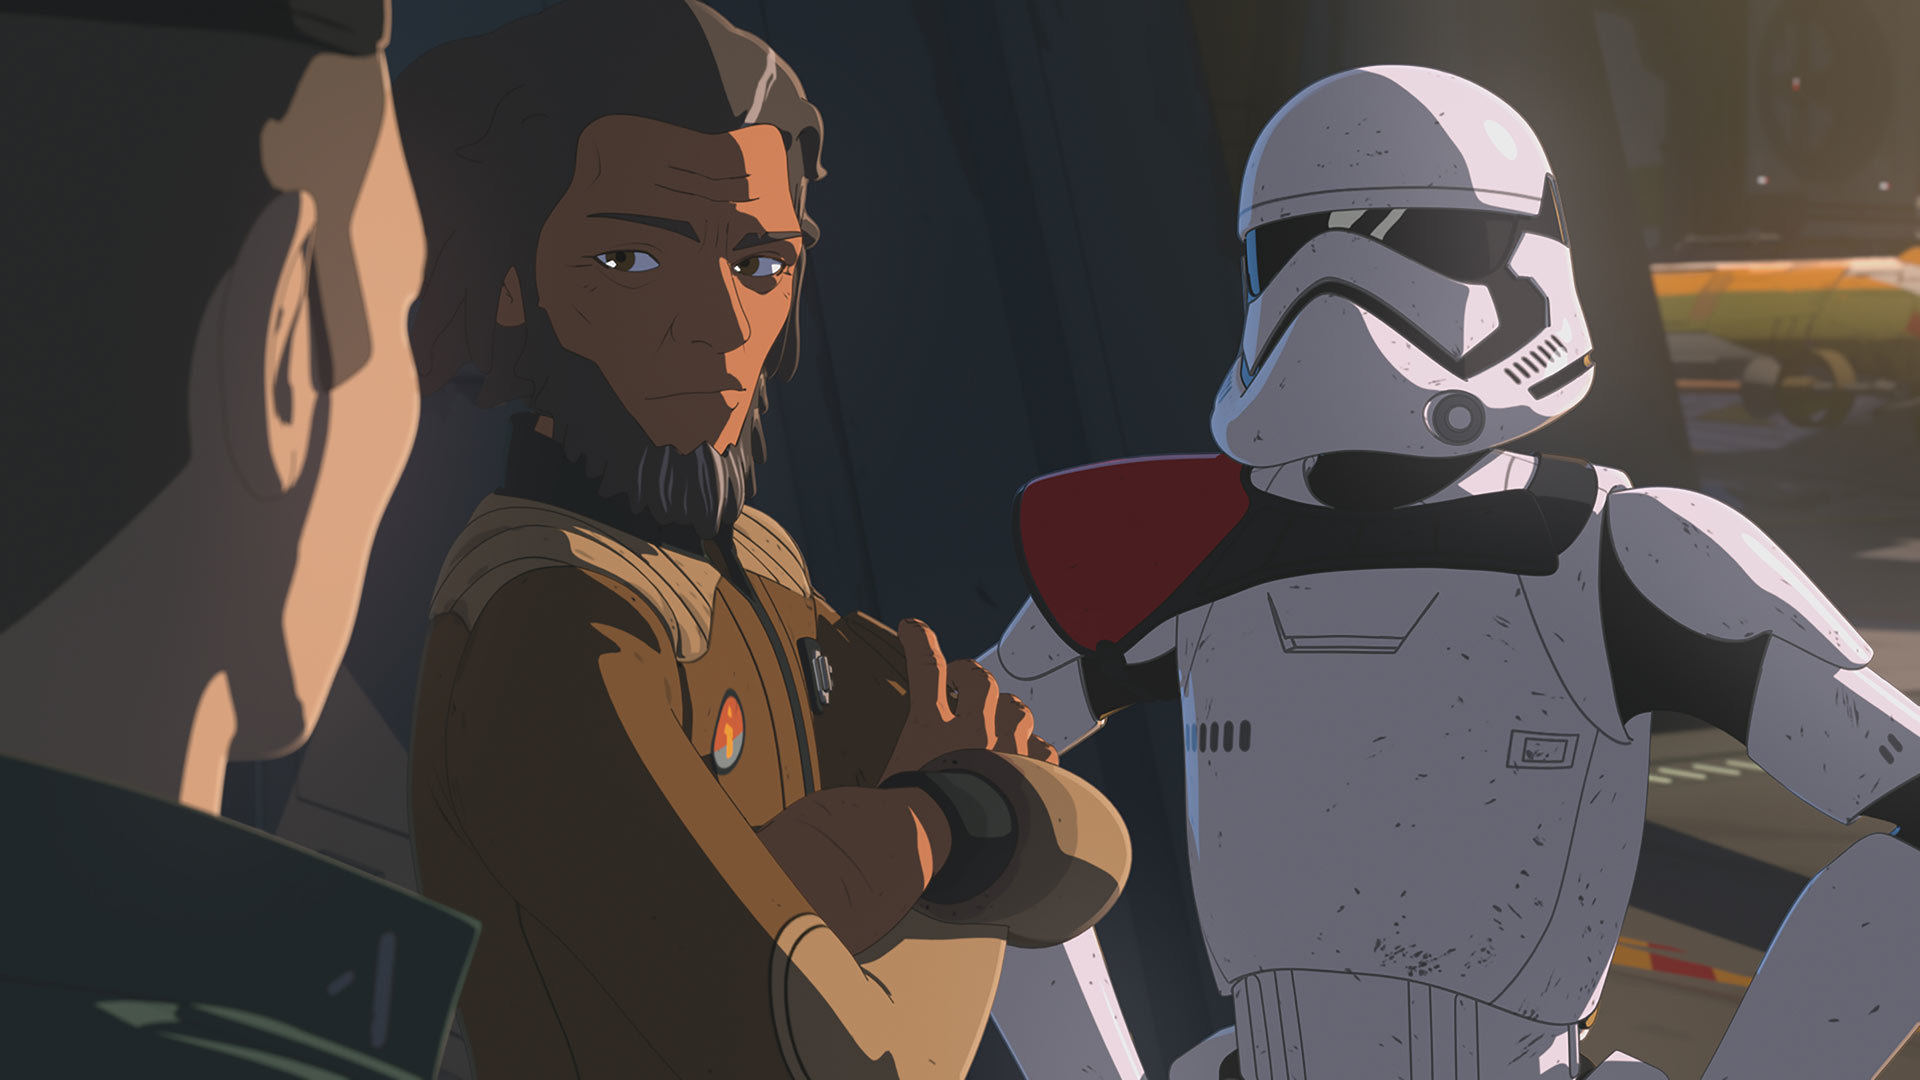 The First Order Occupation